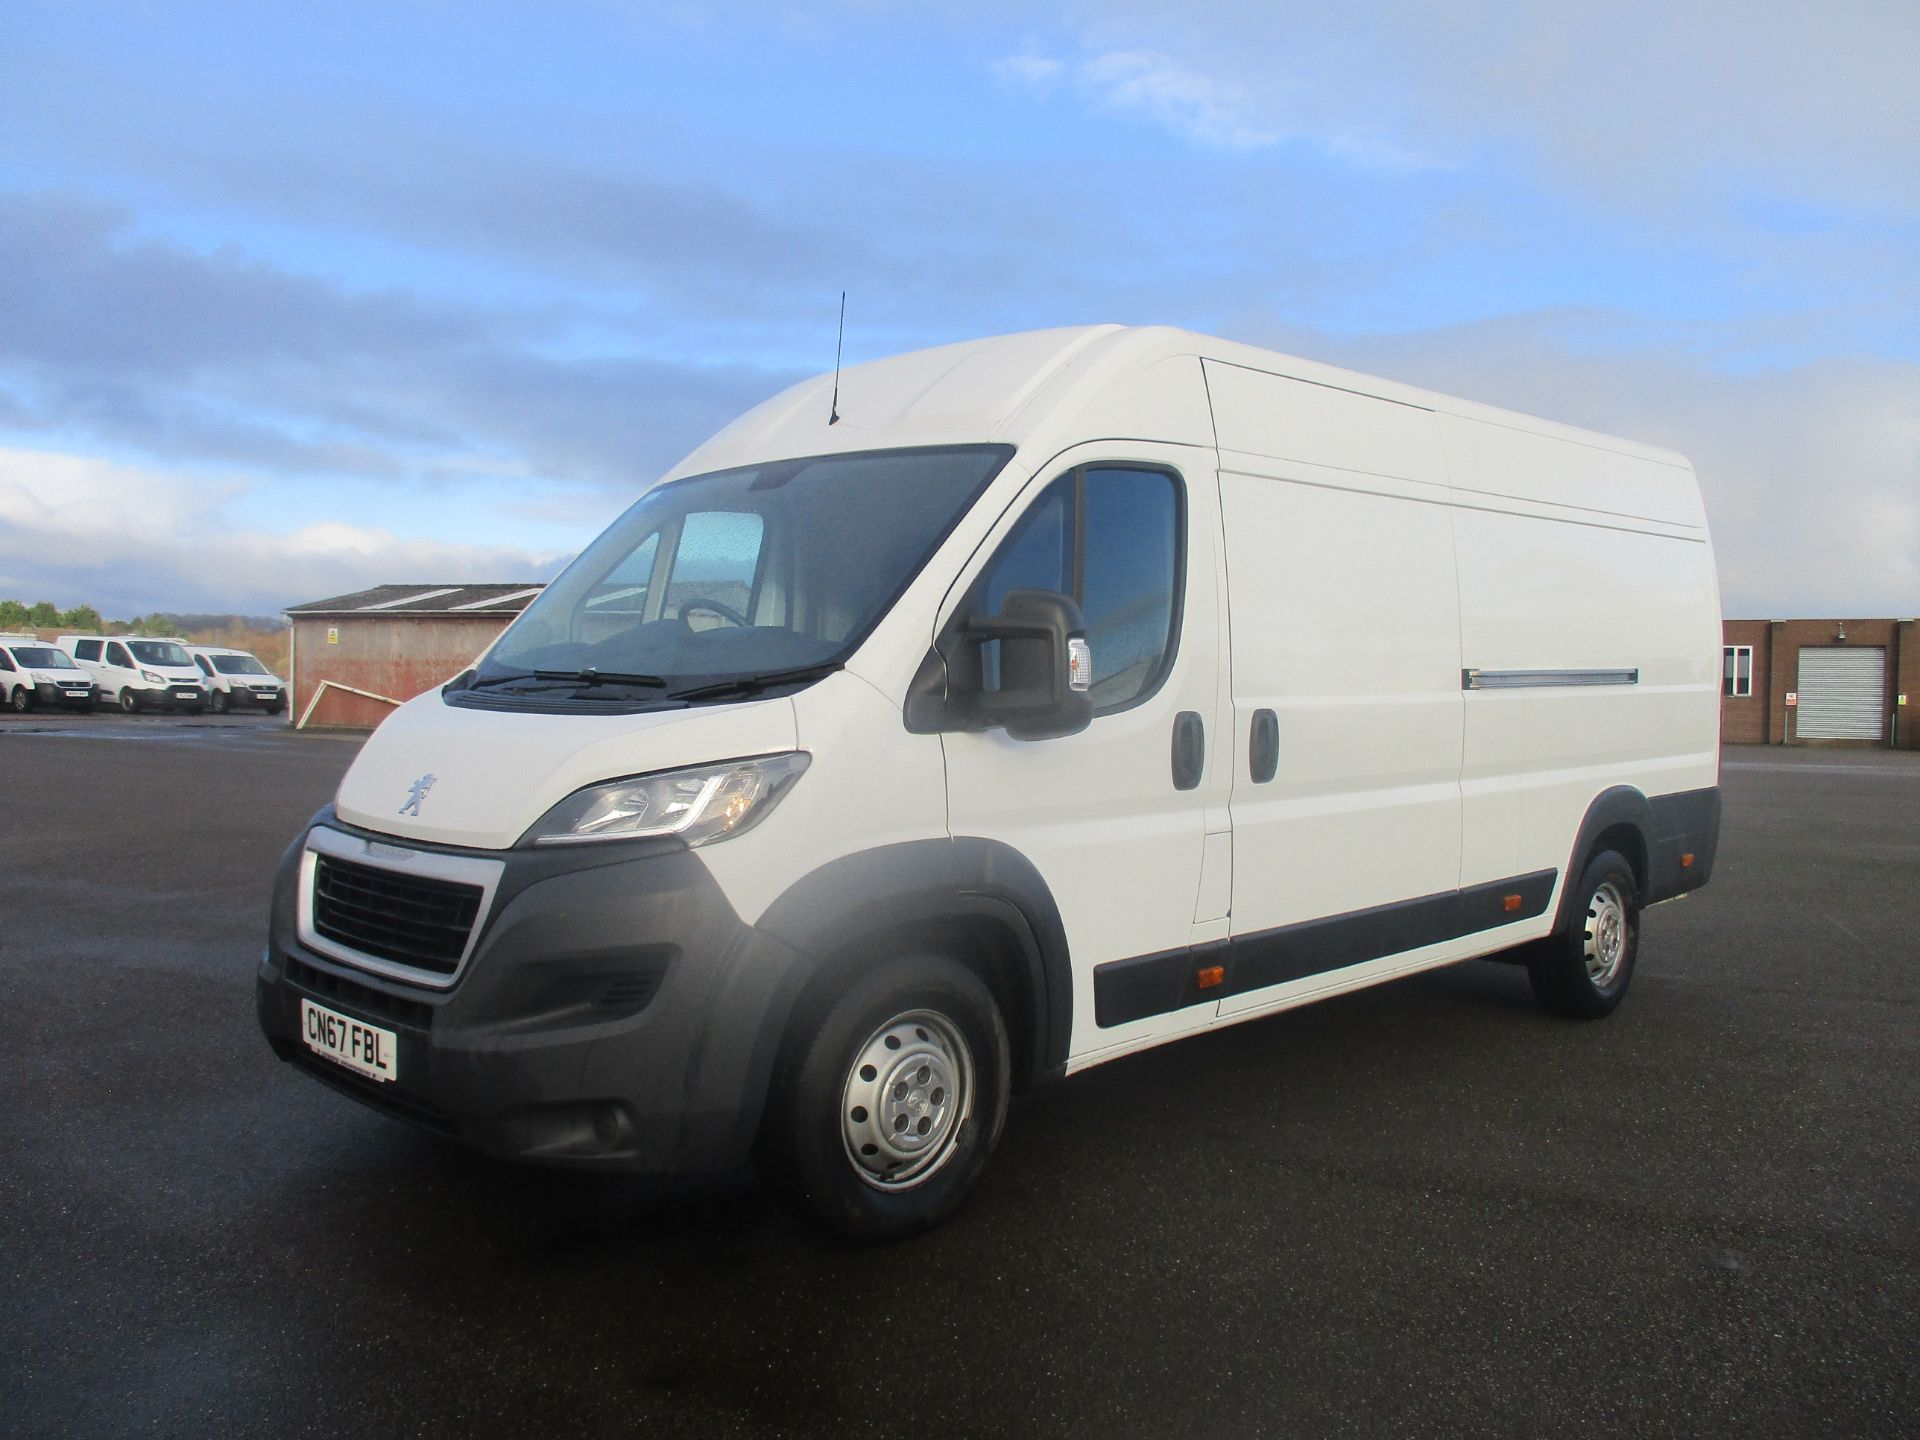 2017 Peugeot Boxer 435 L4 H2 BLUE HDI 2.0 130PS PROFESSIONAL EURO 6. AIR CON, SAT NAV (CN67FBL) Image 3